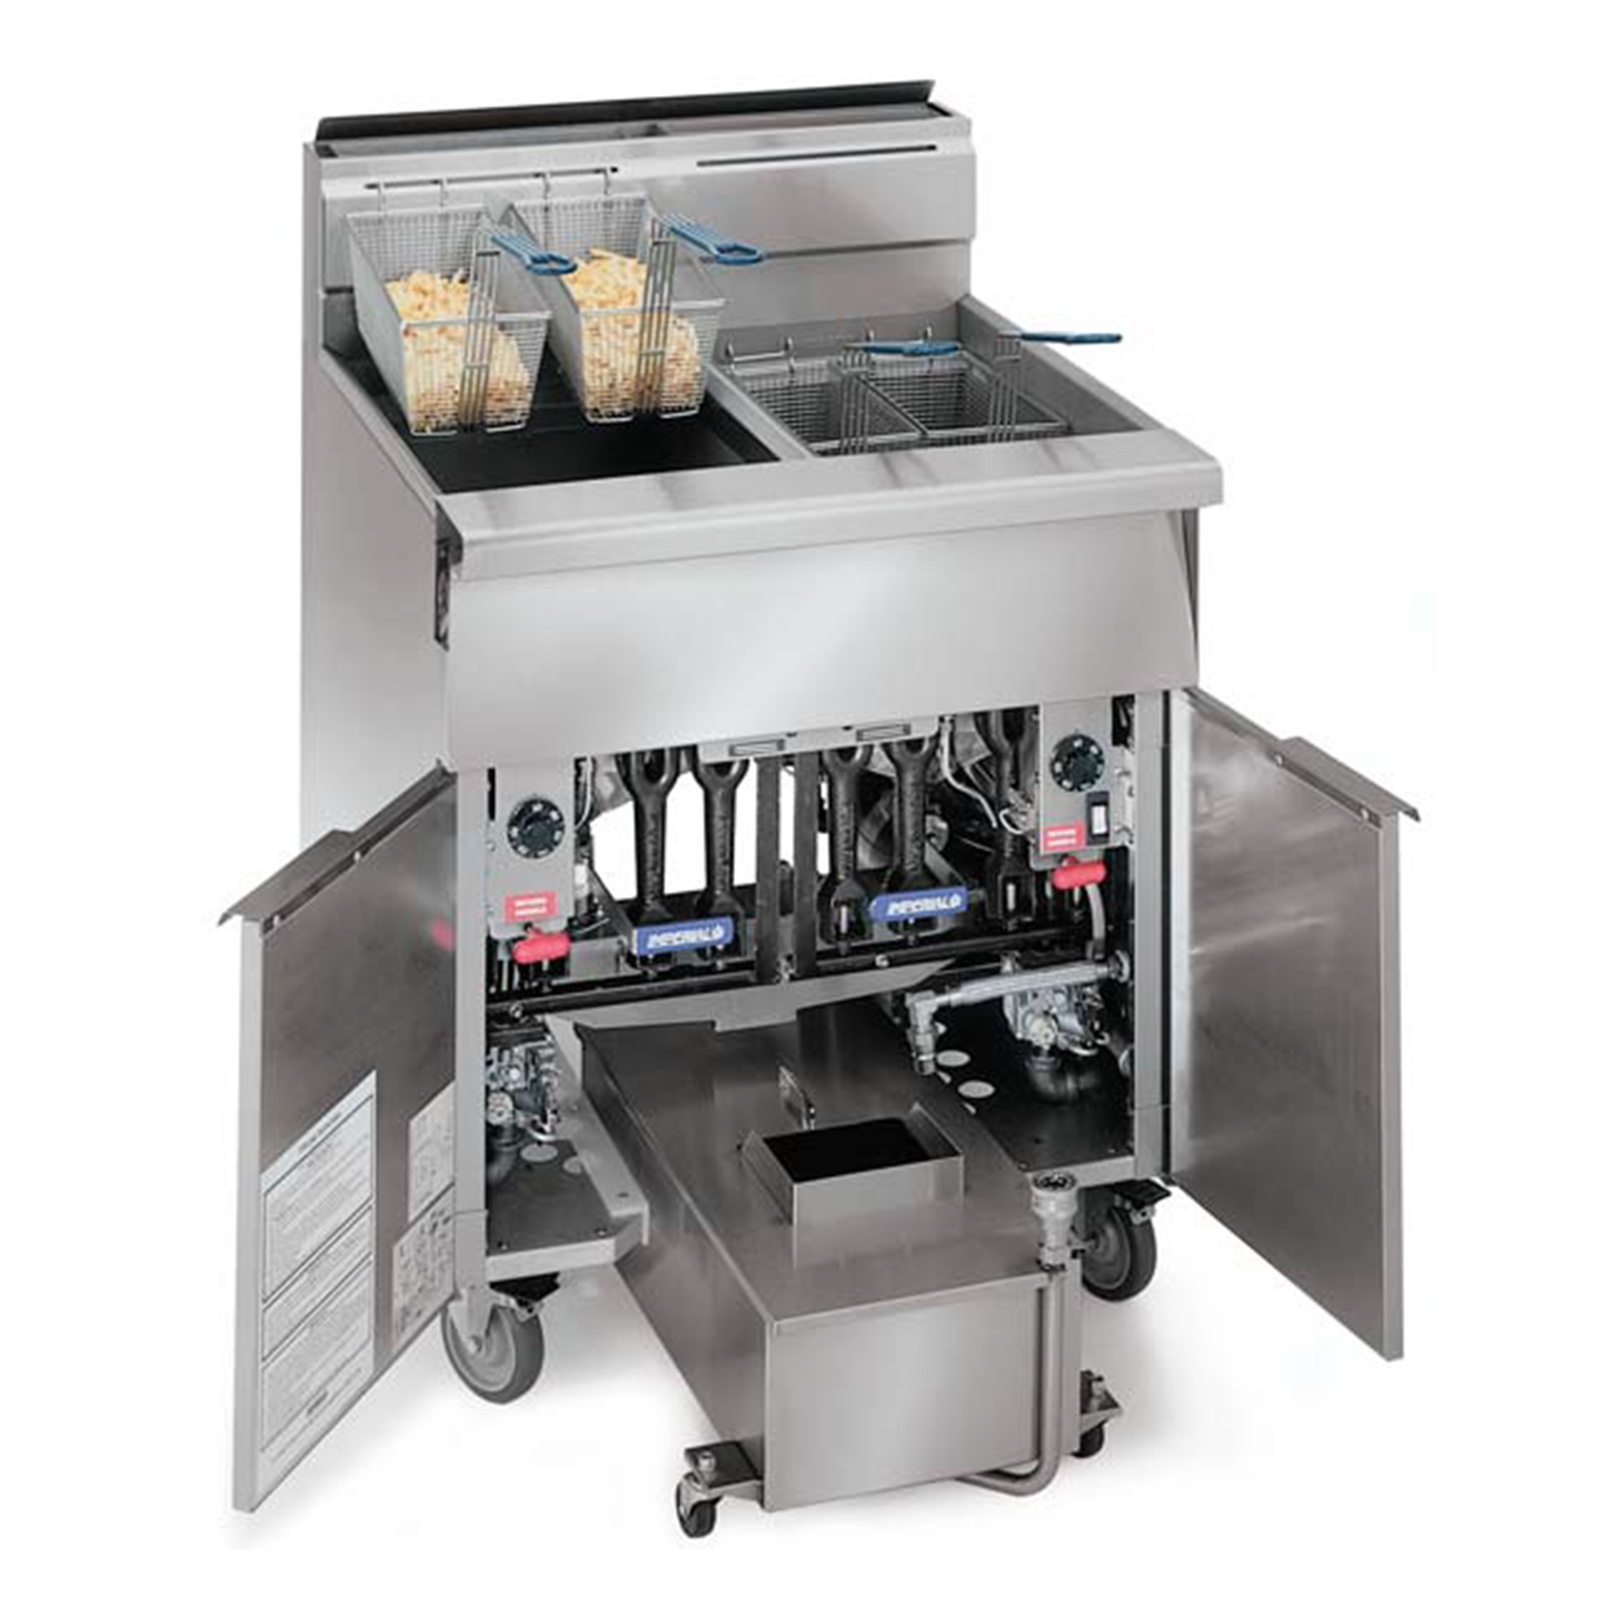 Imperial IHRSP475C fryer, gas, multiple battery